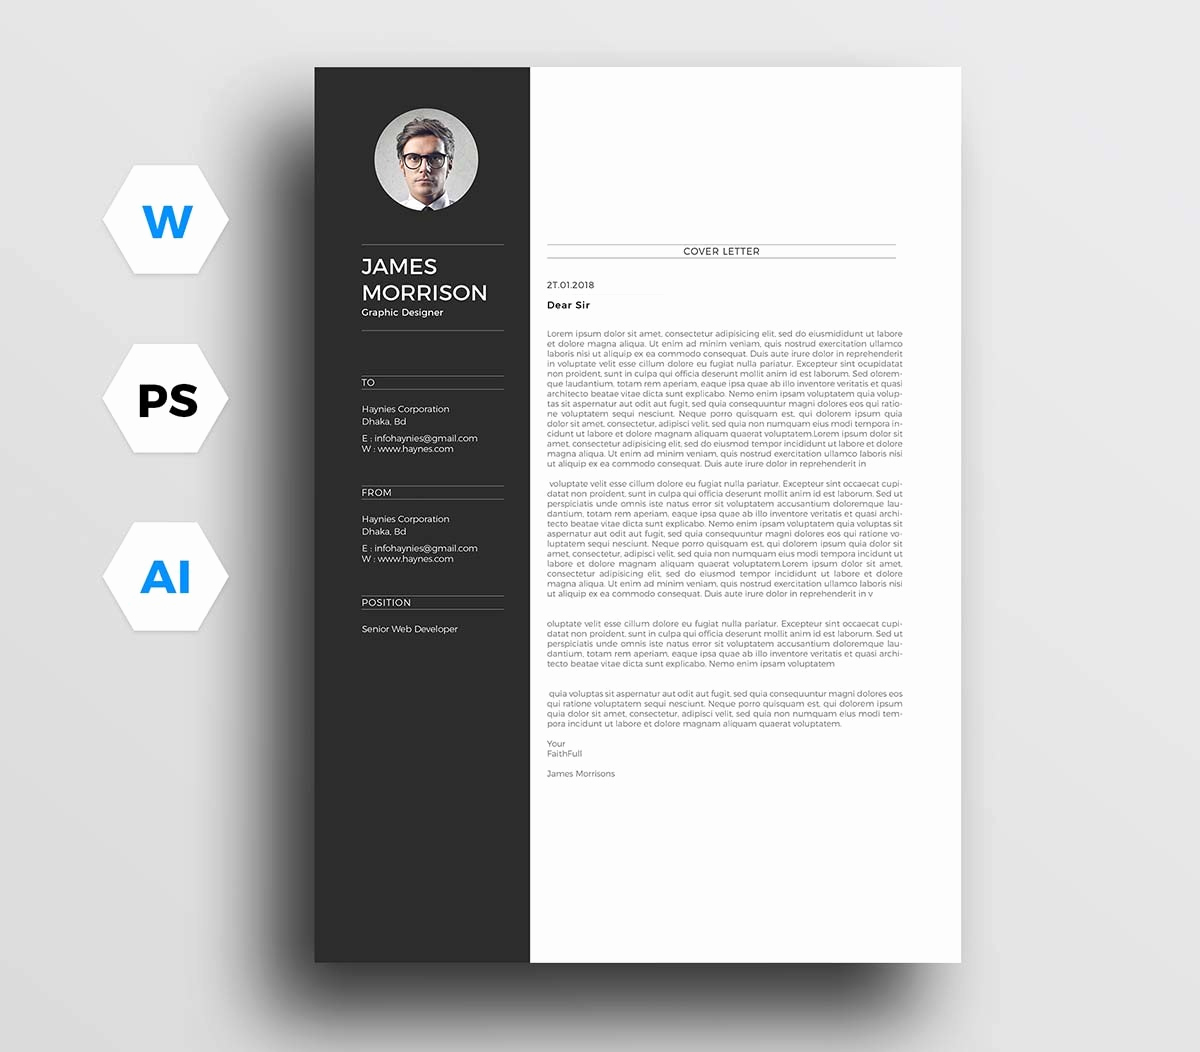 Cover Letter Word Template New 12 Cover Letter Templates for Word [best Free Downloadable